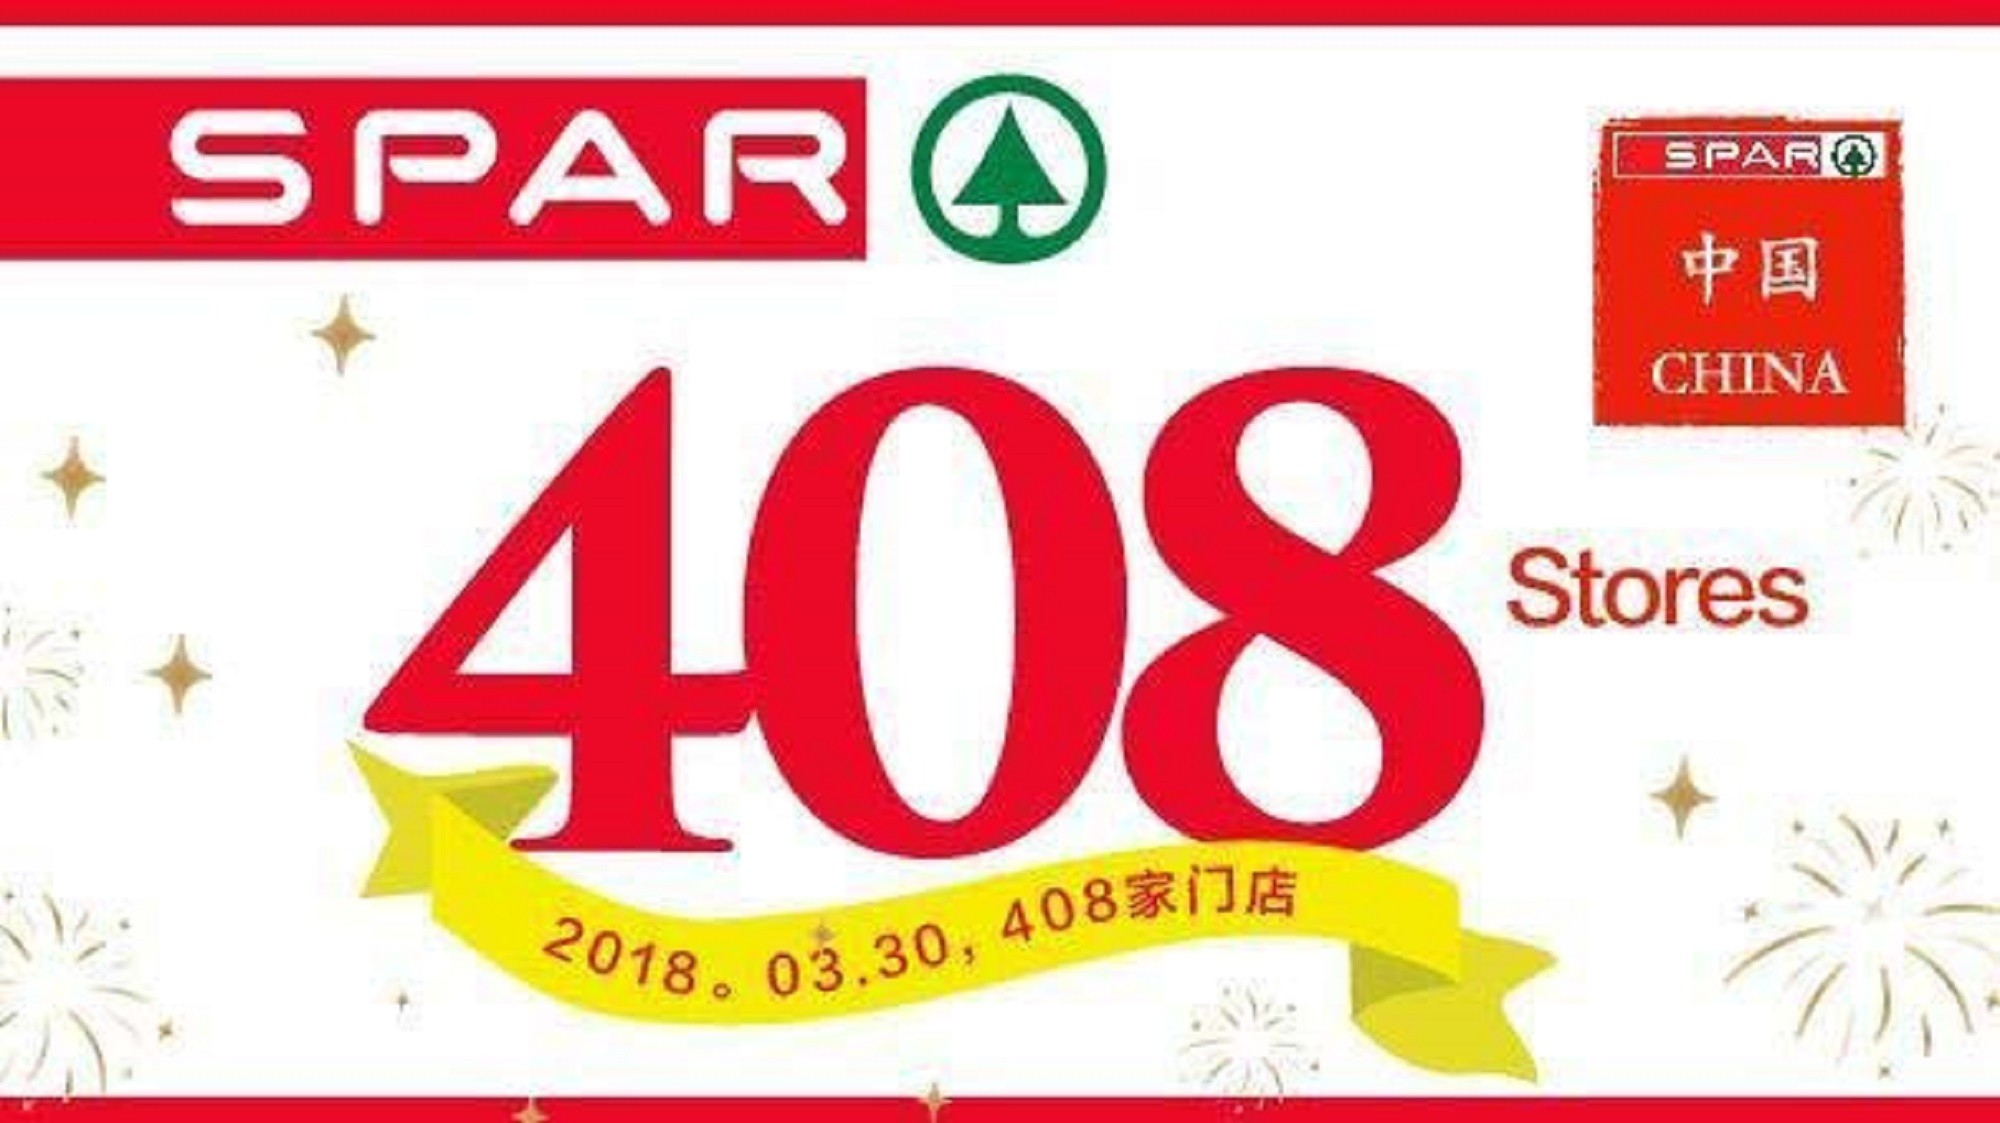 SPAR China 408 Stores in First Quarter 2018